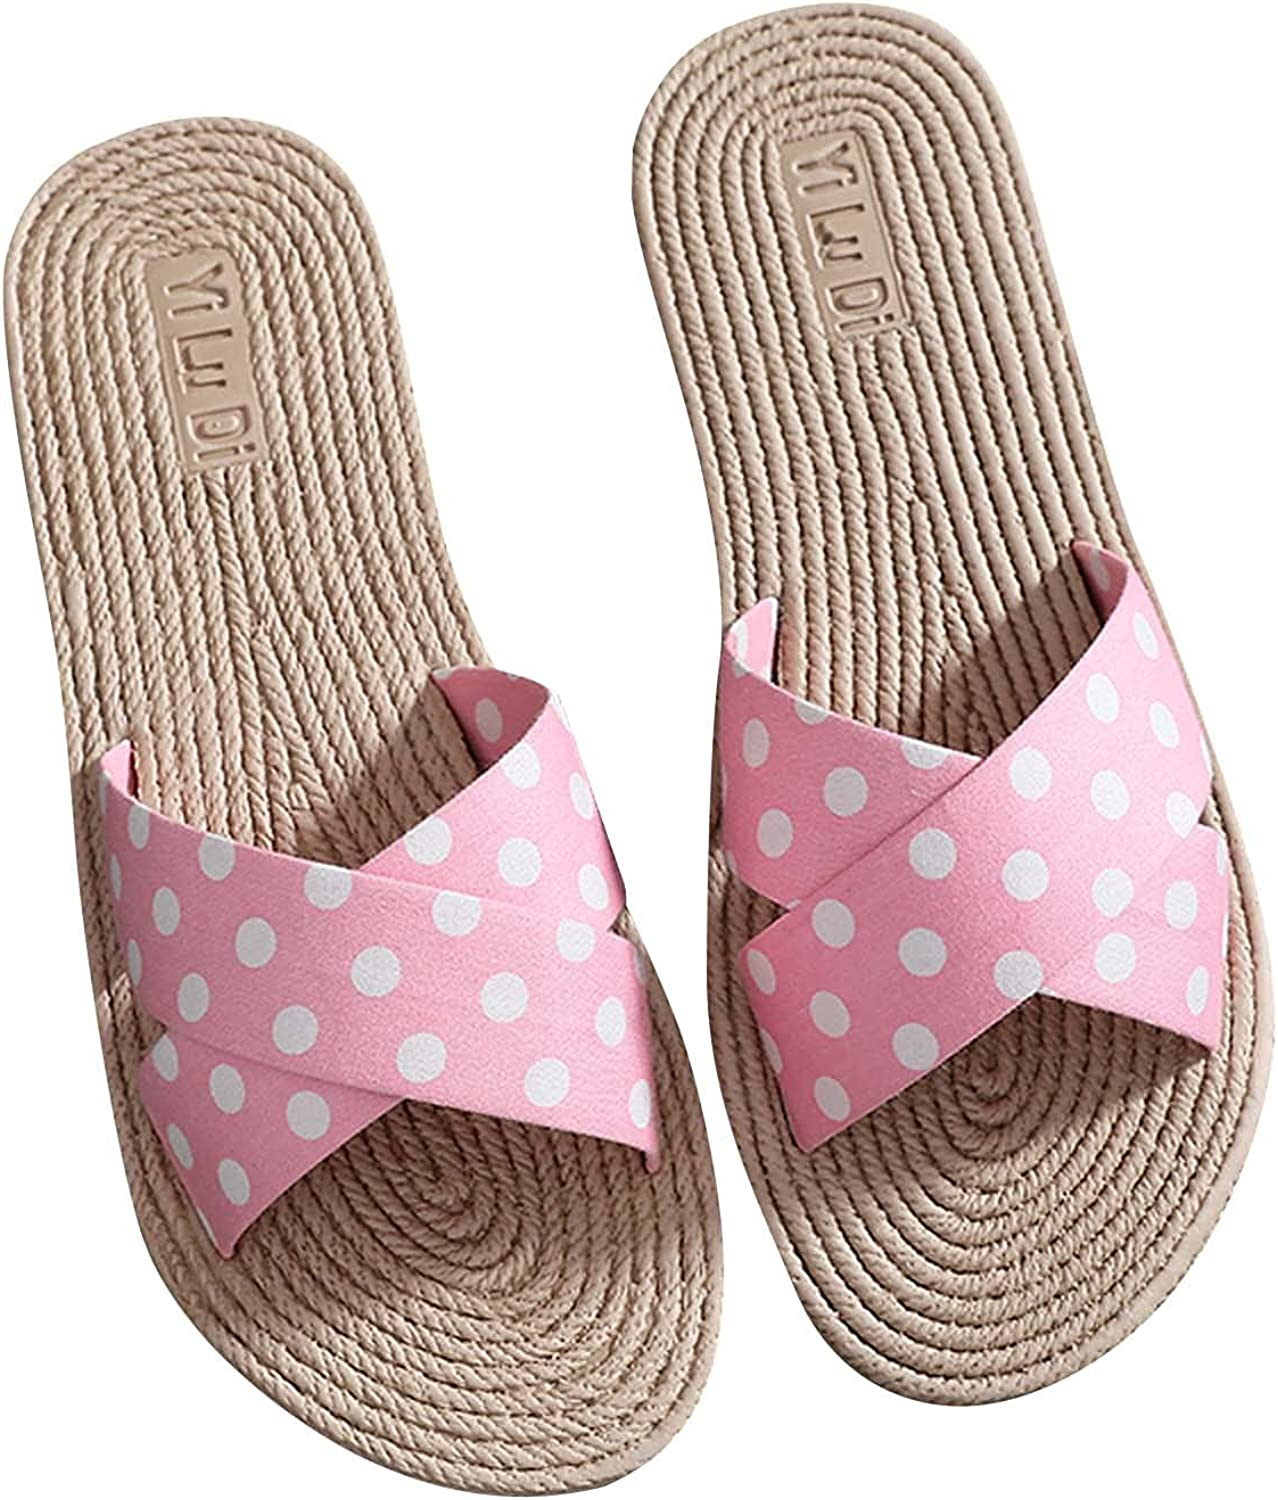 Non-slip Slide Sandals for Women Canvas Knot Bow Slides Sandals for House Indoor Outdoor Slippers